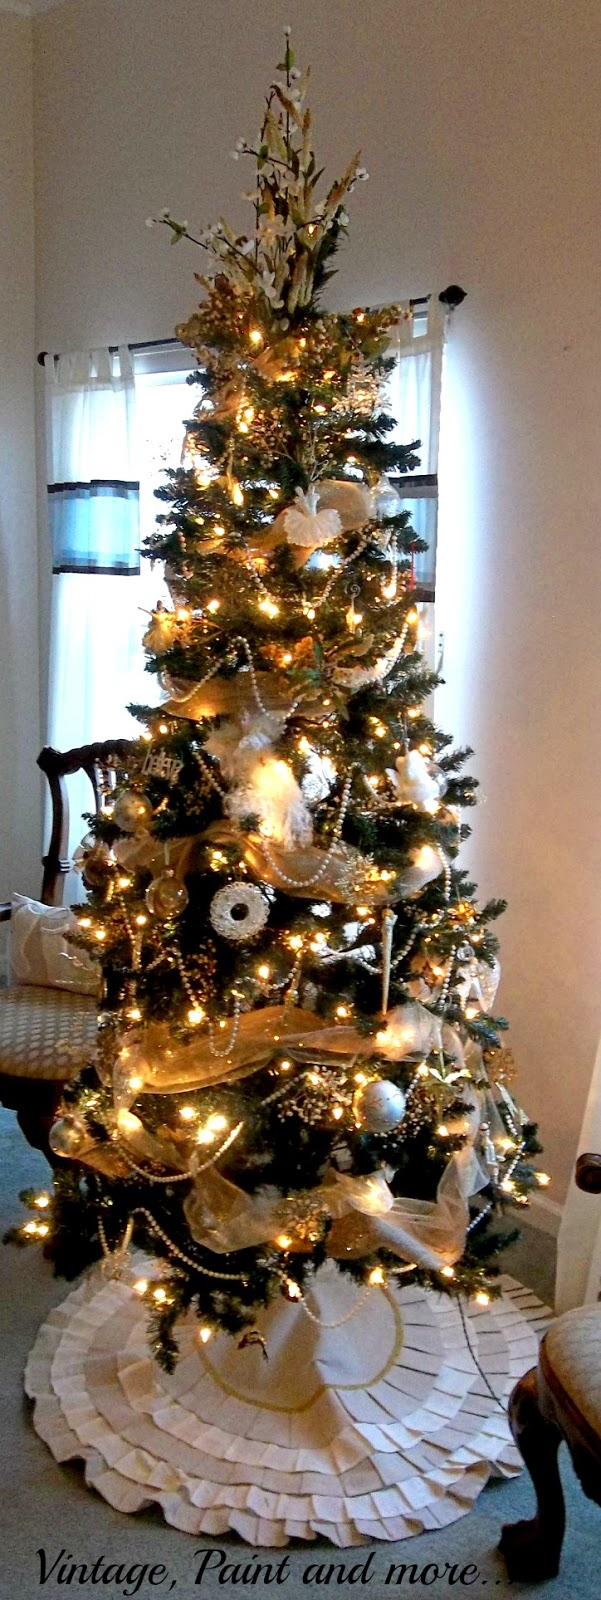 Vintage, Paint and more... a neutral Christmas tree done in golds and whites